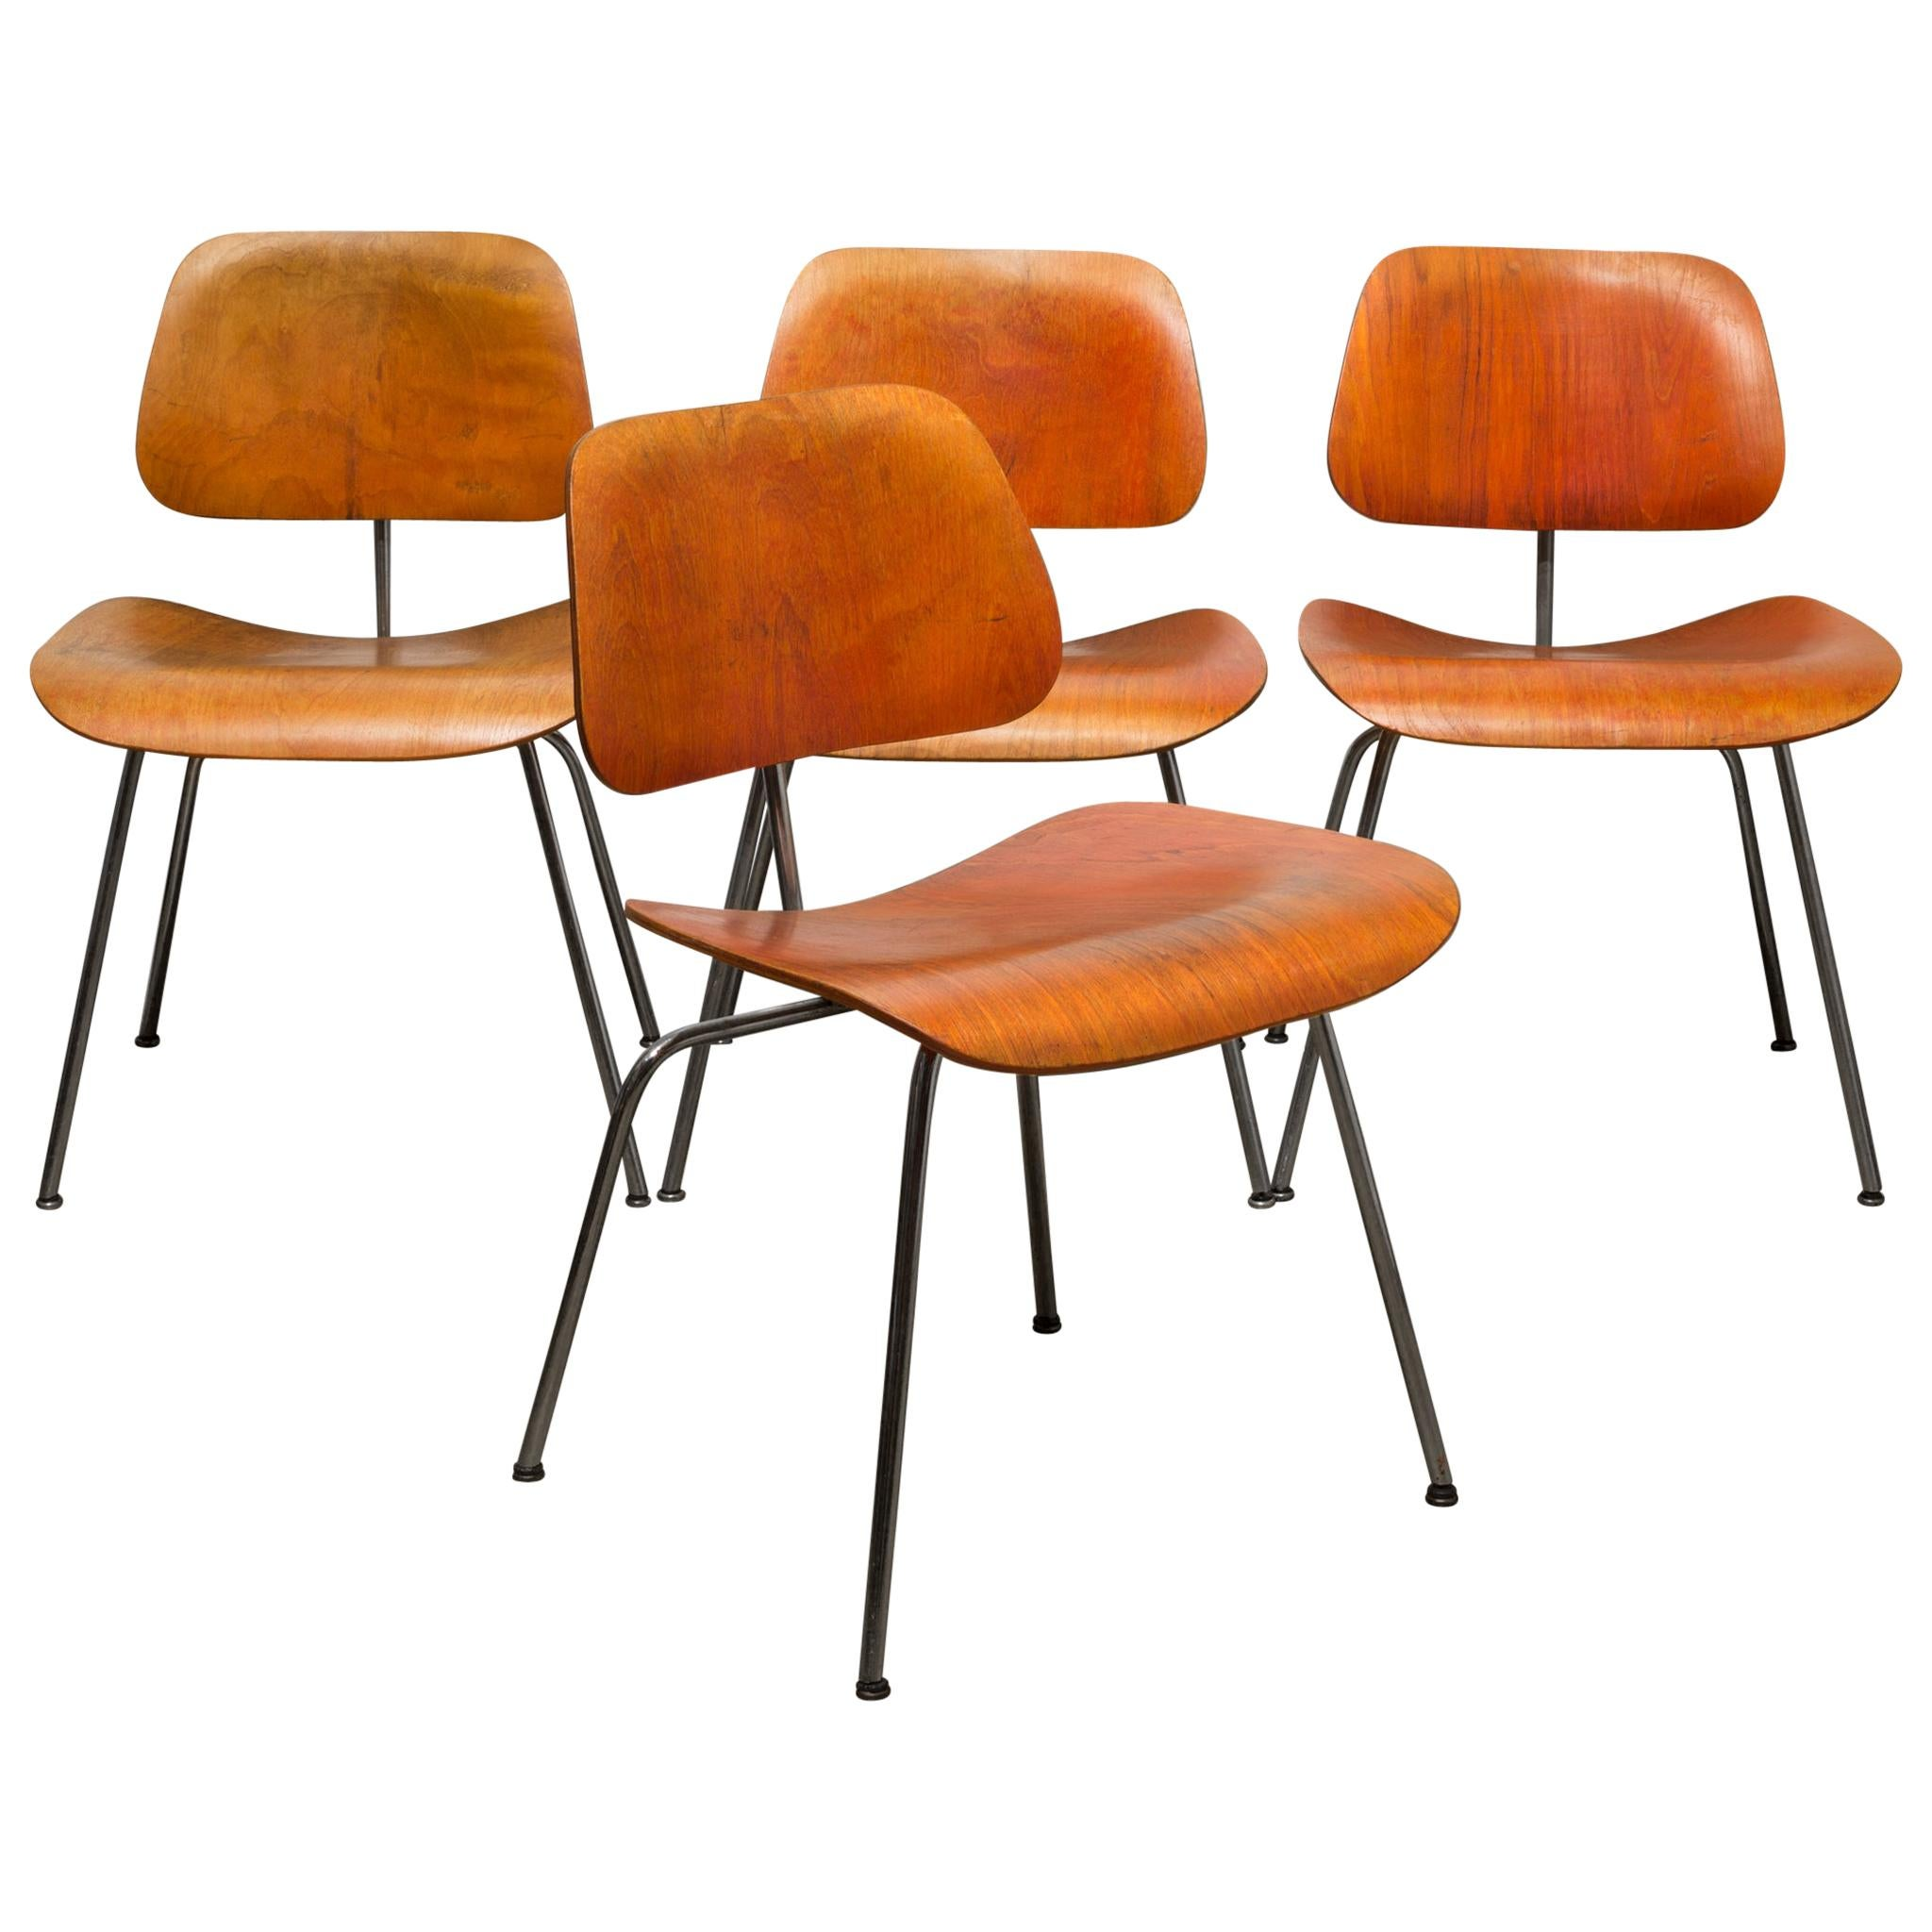 Set of Rare Red Aniline Herman Miller DCM Chairs, possibly Evans circa 1950-1960